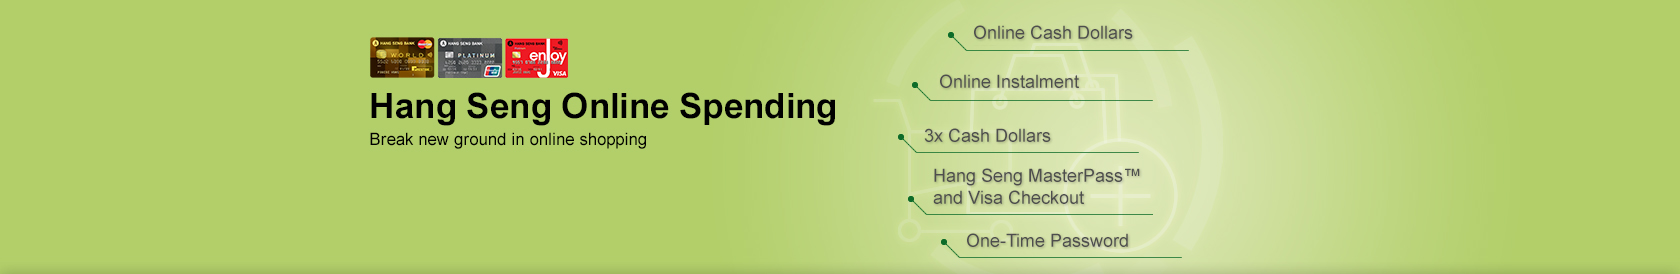 Hang Seng Online Spending Break new ground online shopping